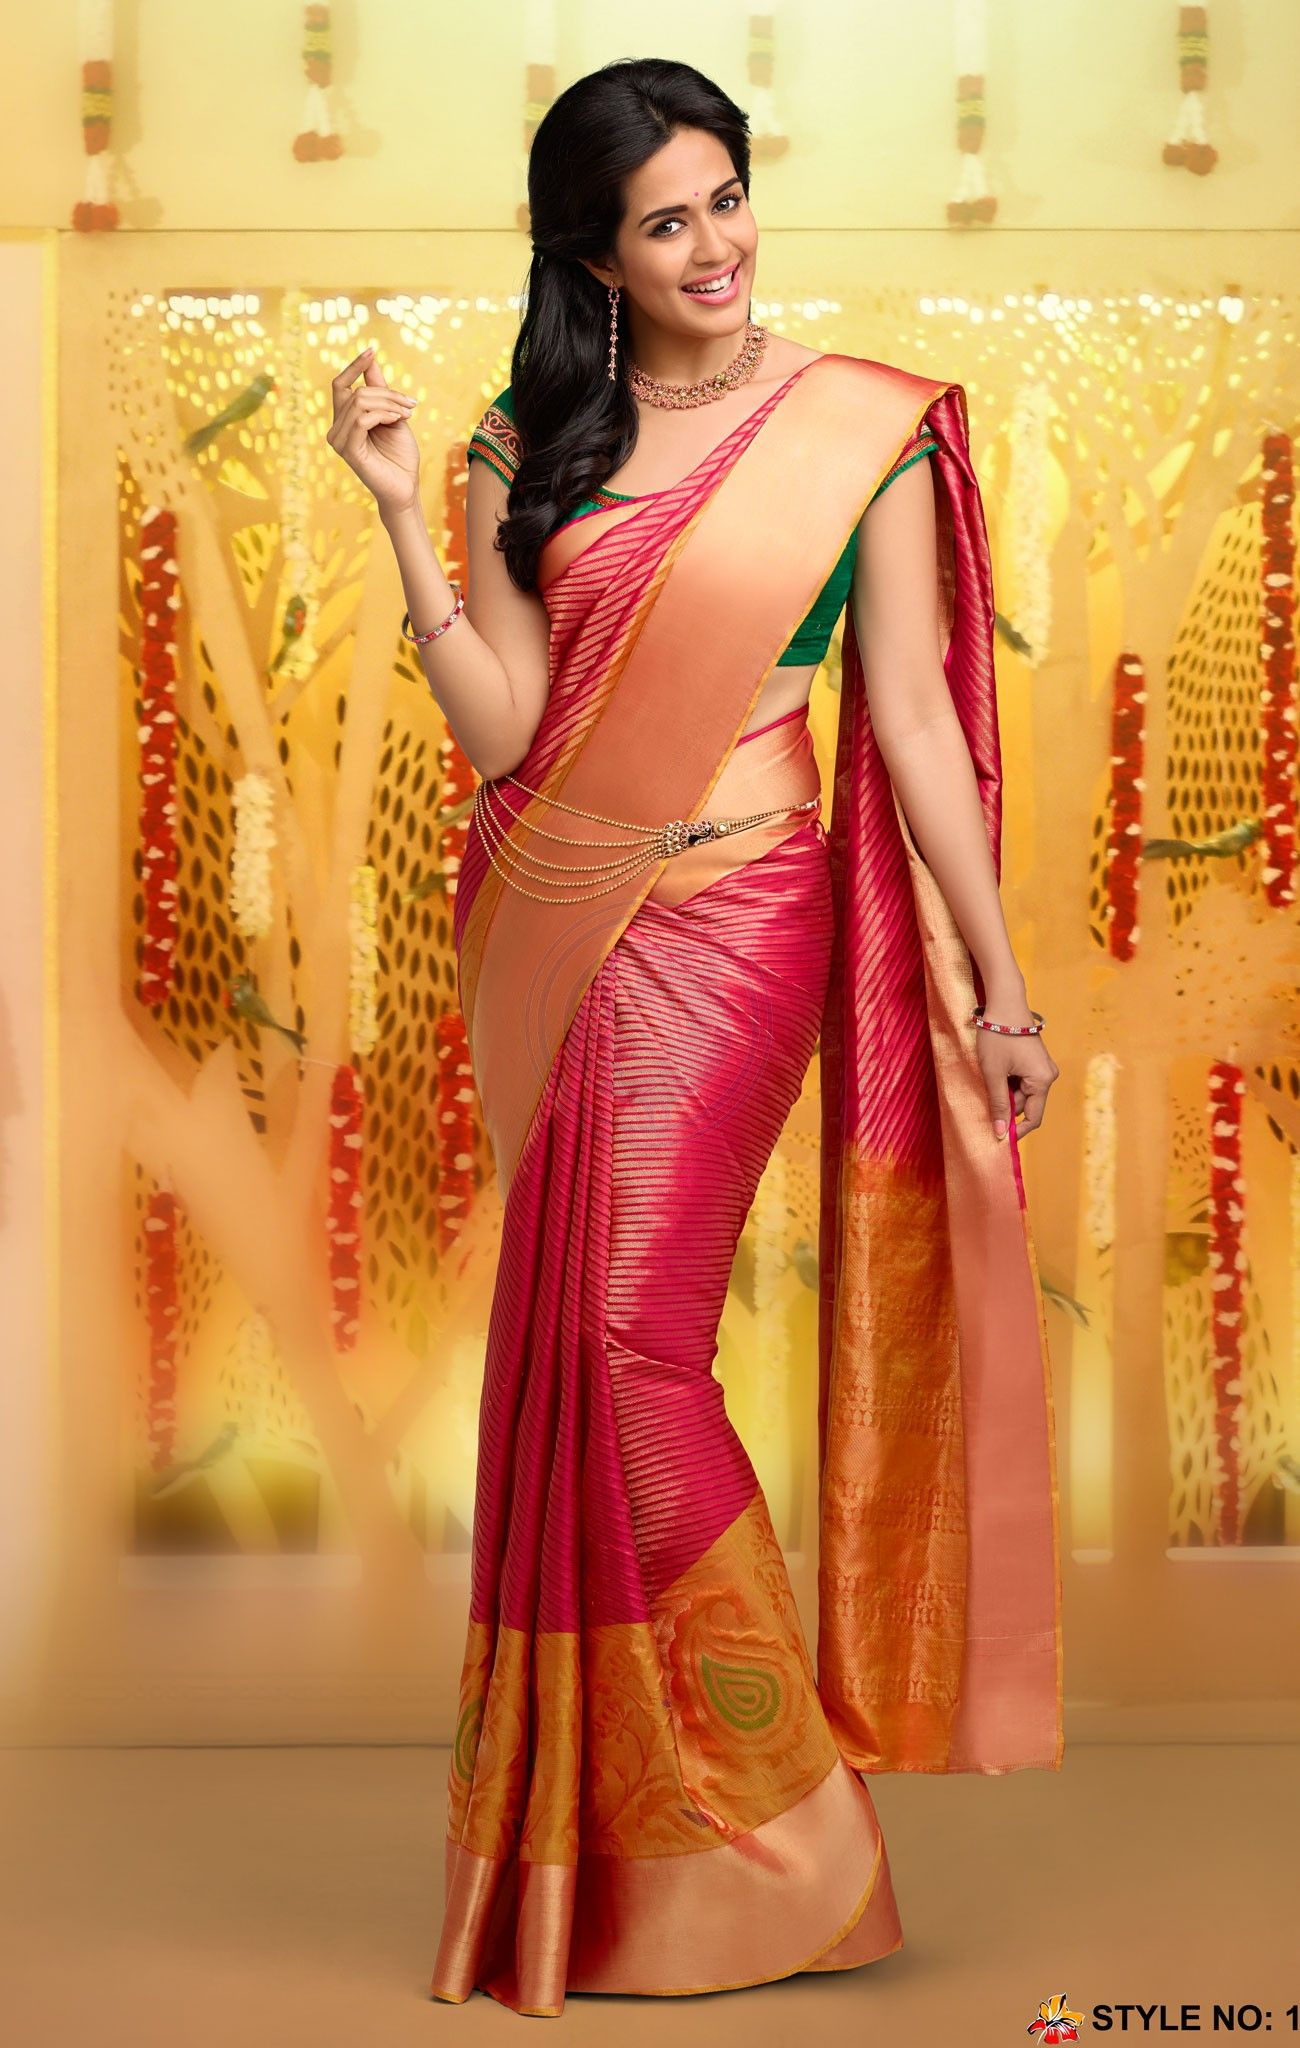 ac6f1456c Saree Belt